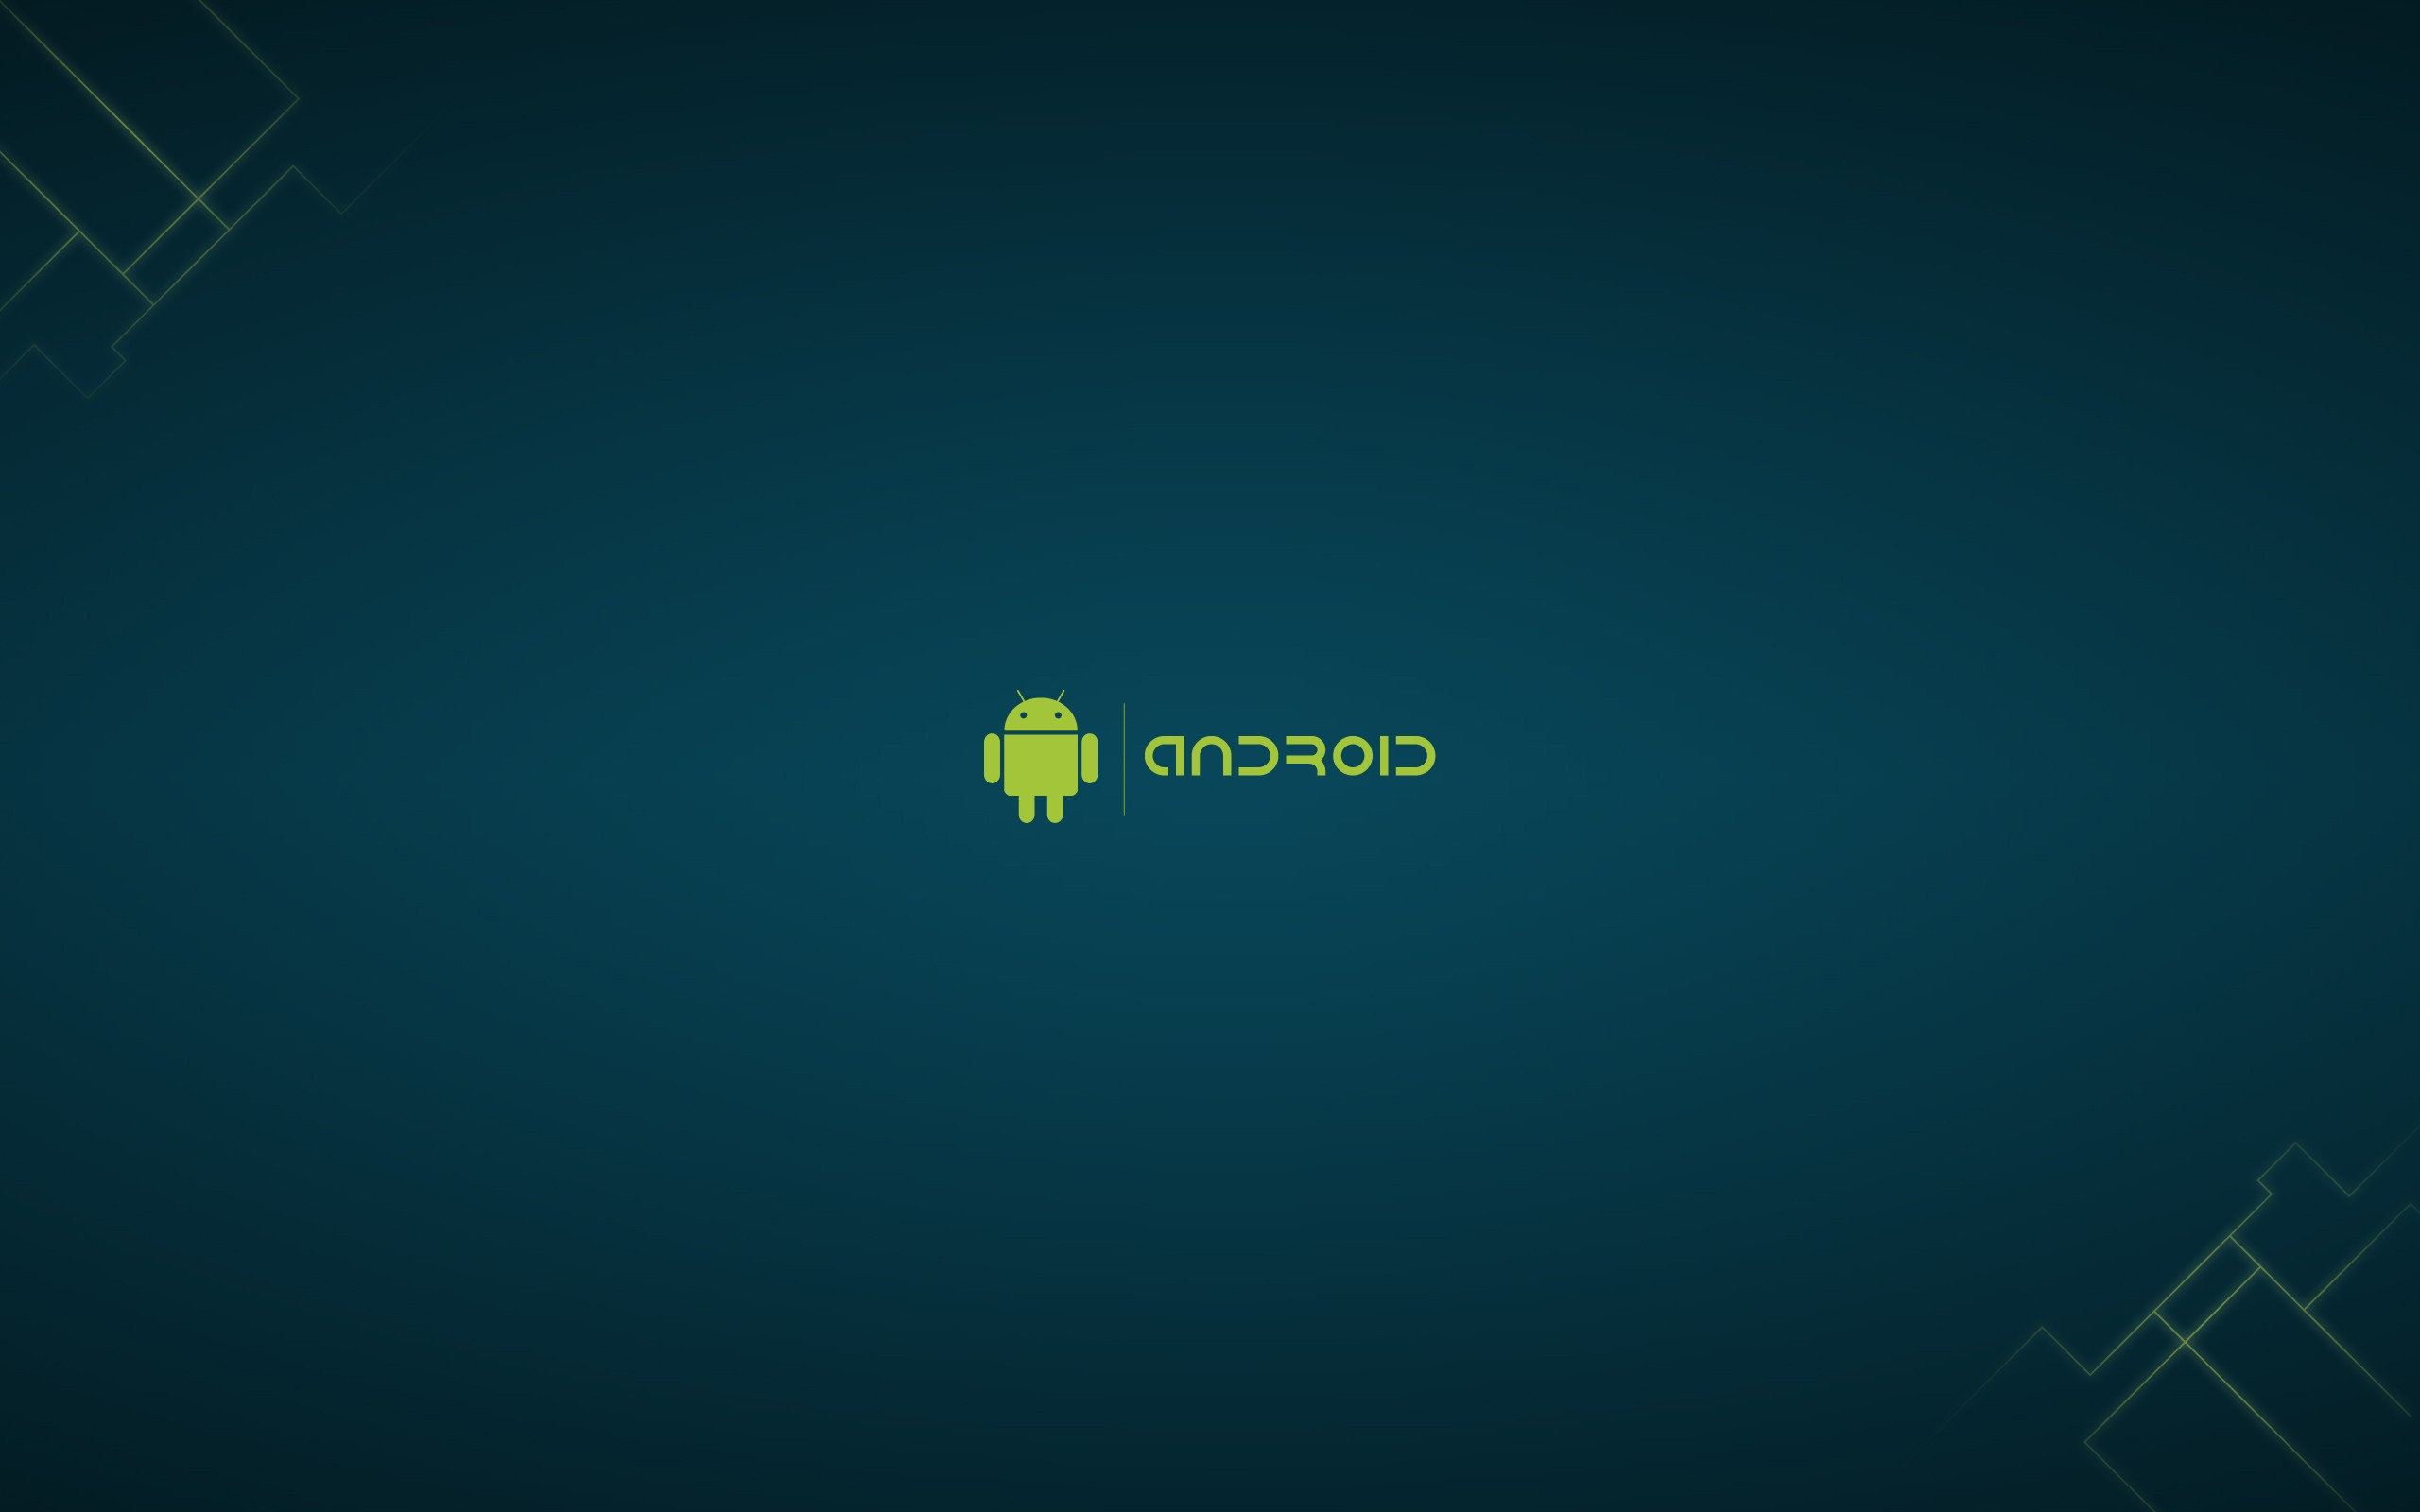 Awesome Android Logo Wallpaper 43637 2560x1600 Px